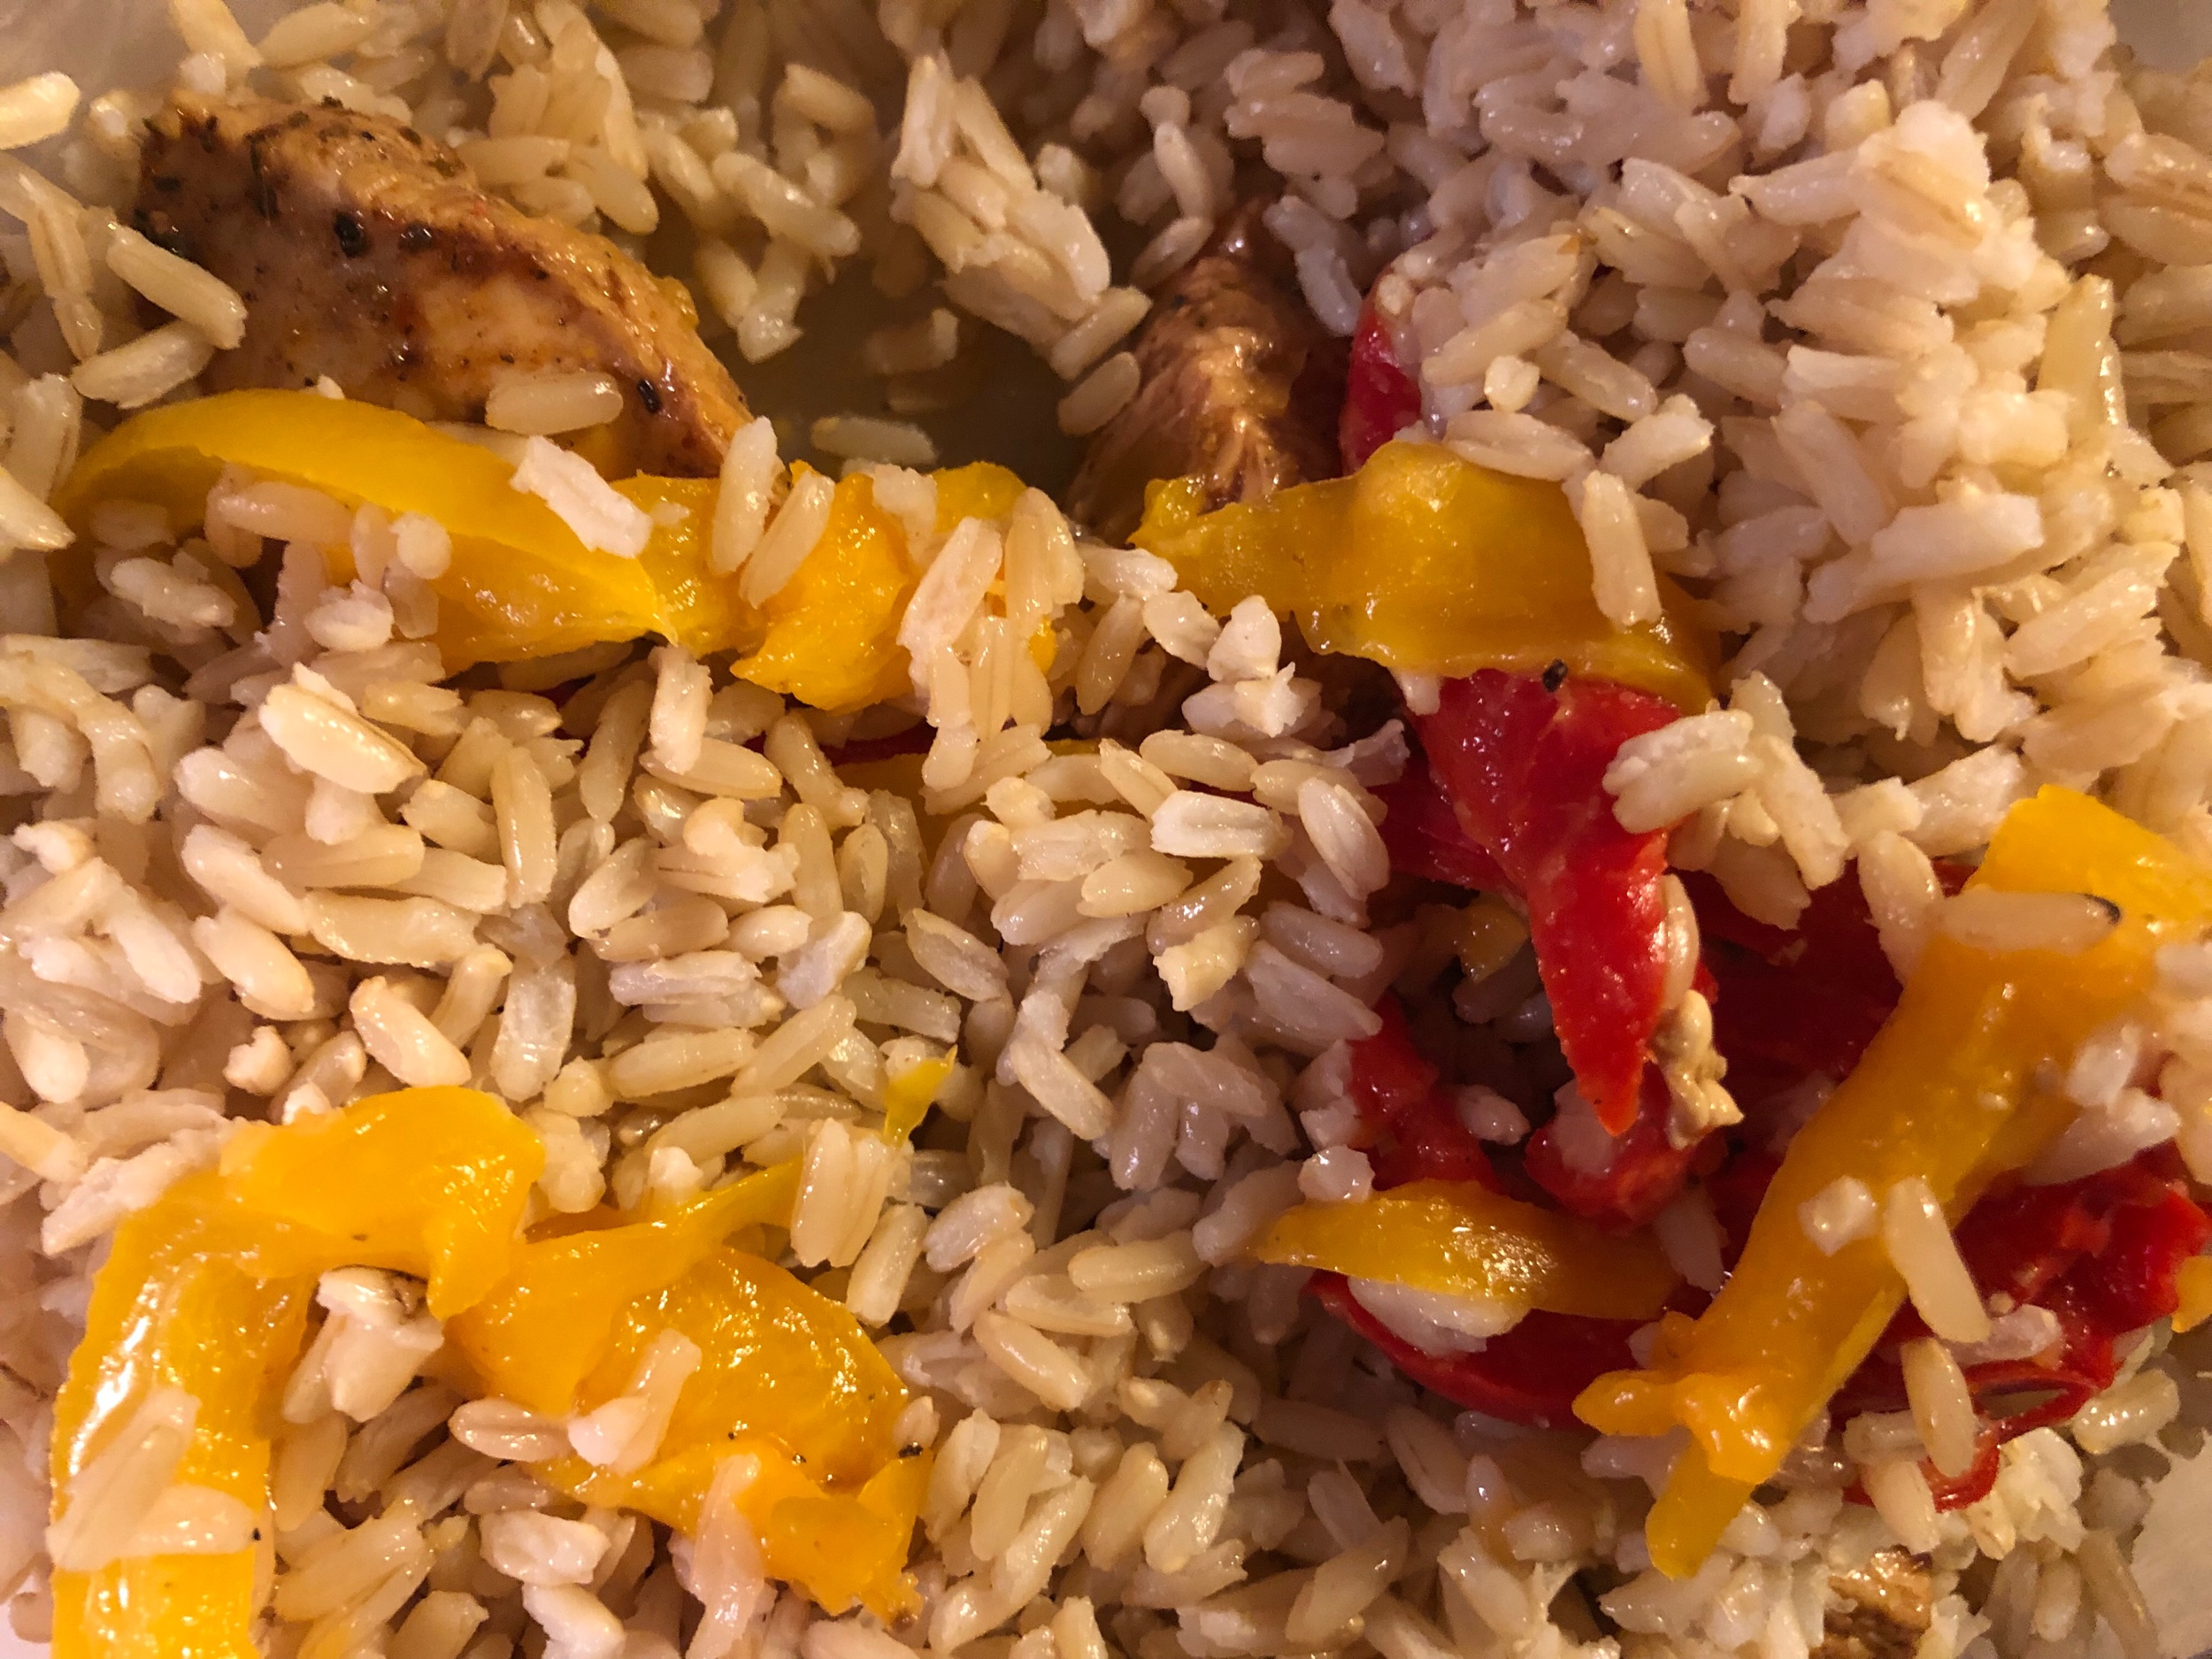 homecooked A1 chicken, brown rice, sautéed bell peppers in olive oil